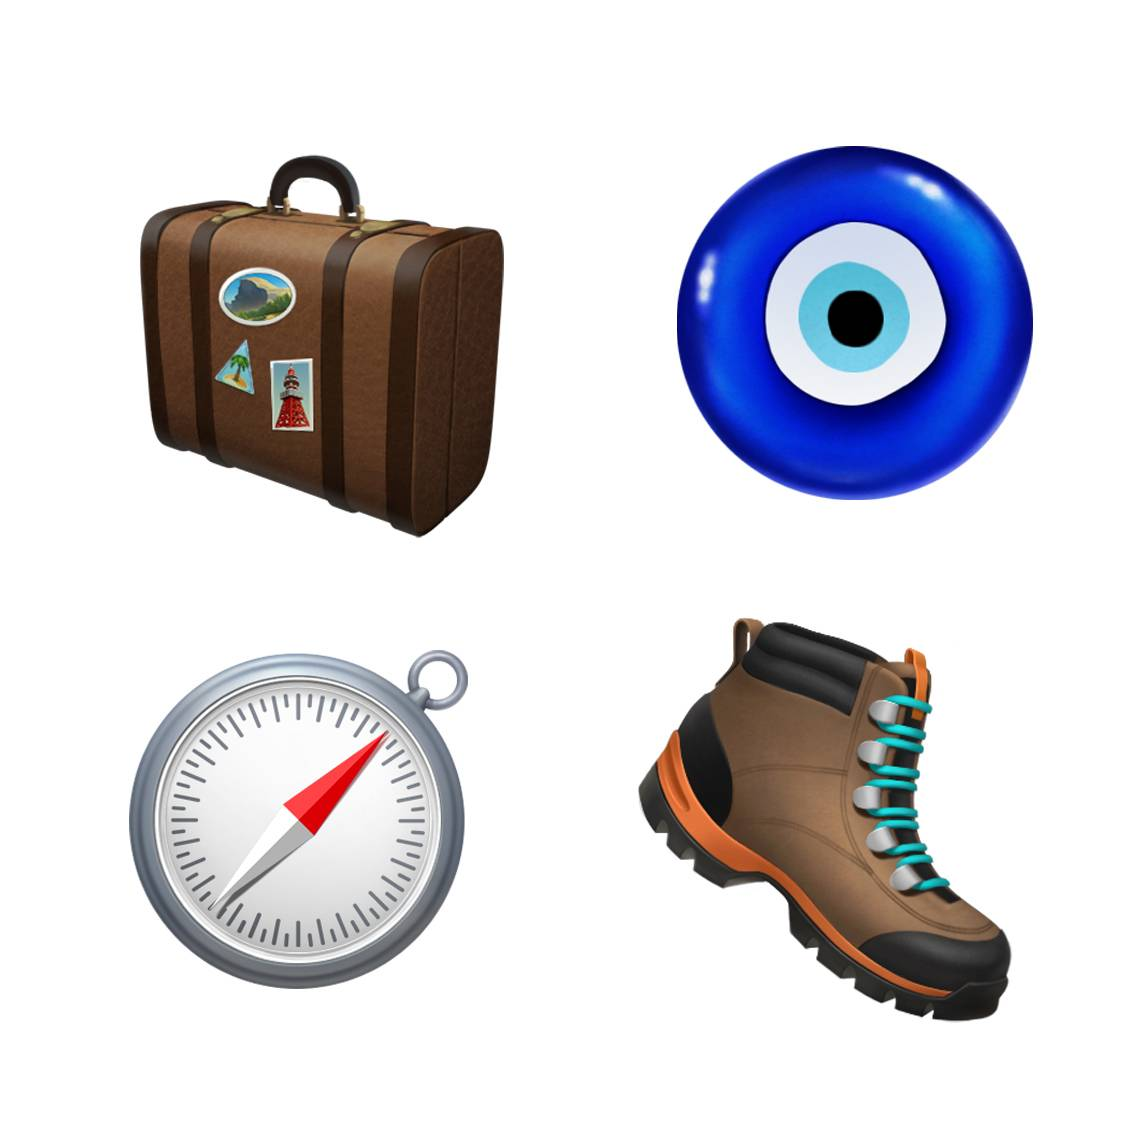 Ios 121 Emoji Update Luggage Boots Compass 10012018